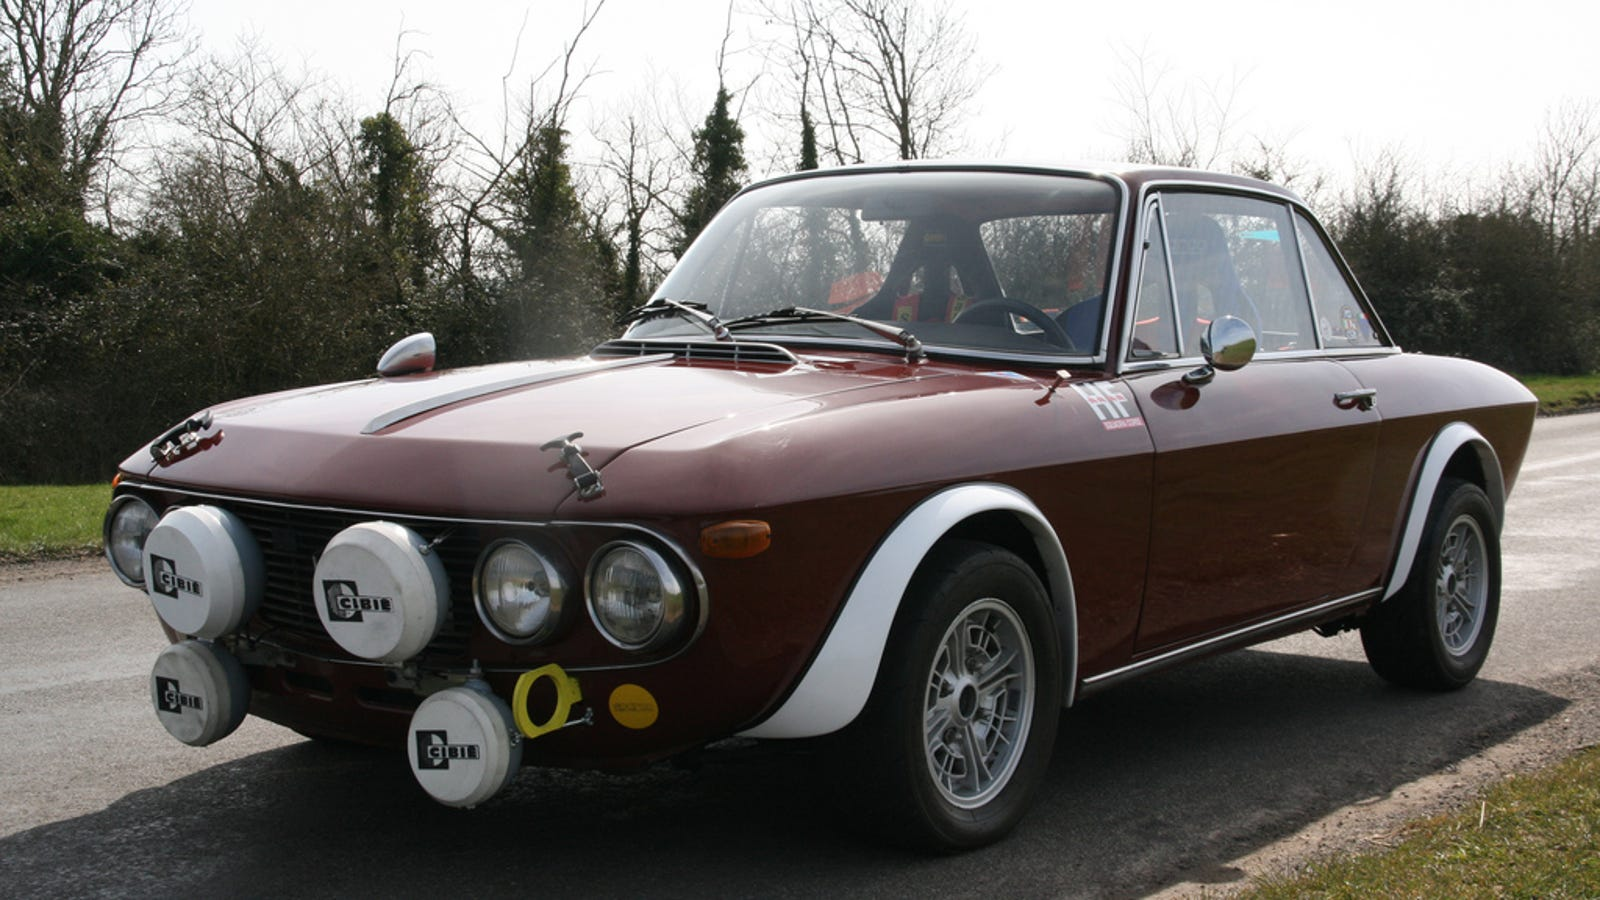 Why The 1969 Lancia Fulvia Coupe Is The Most Beautiful Car